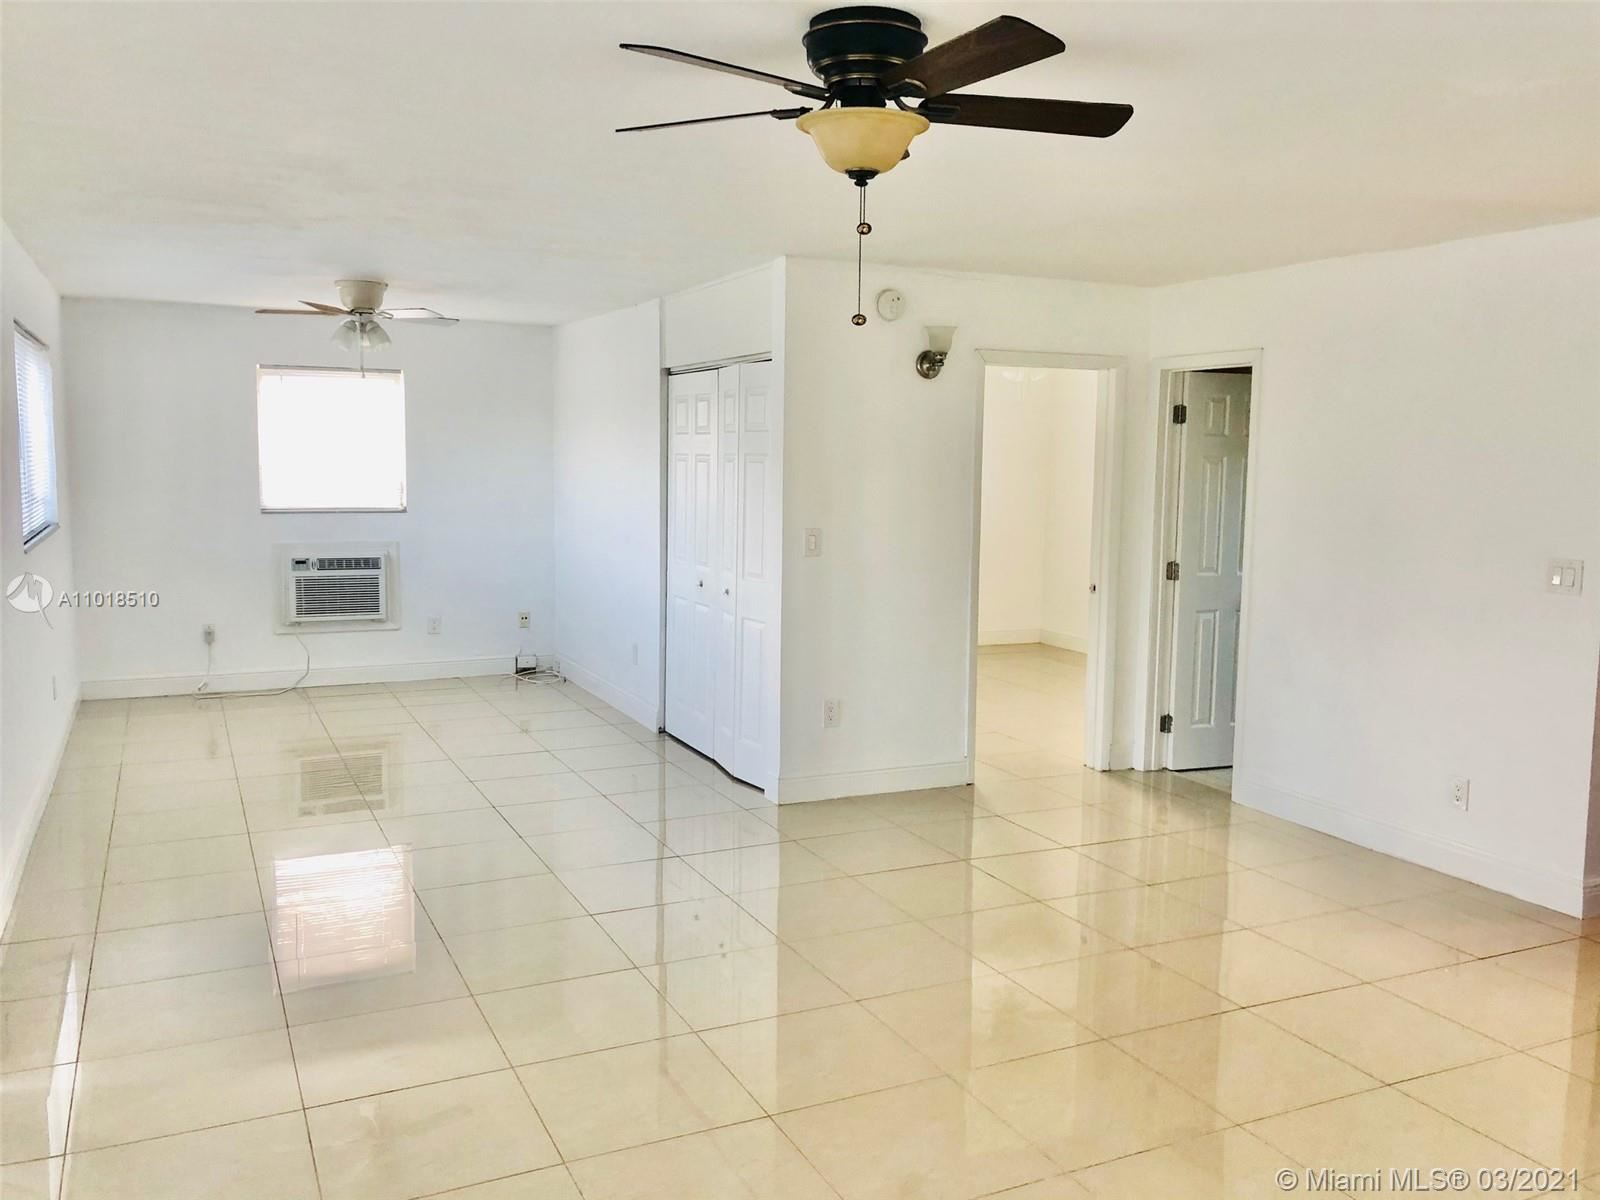 1025 SE 15th St #9D, Fort Lauderdale, FL 33316 - #: A11018510